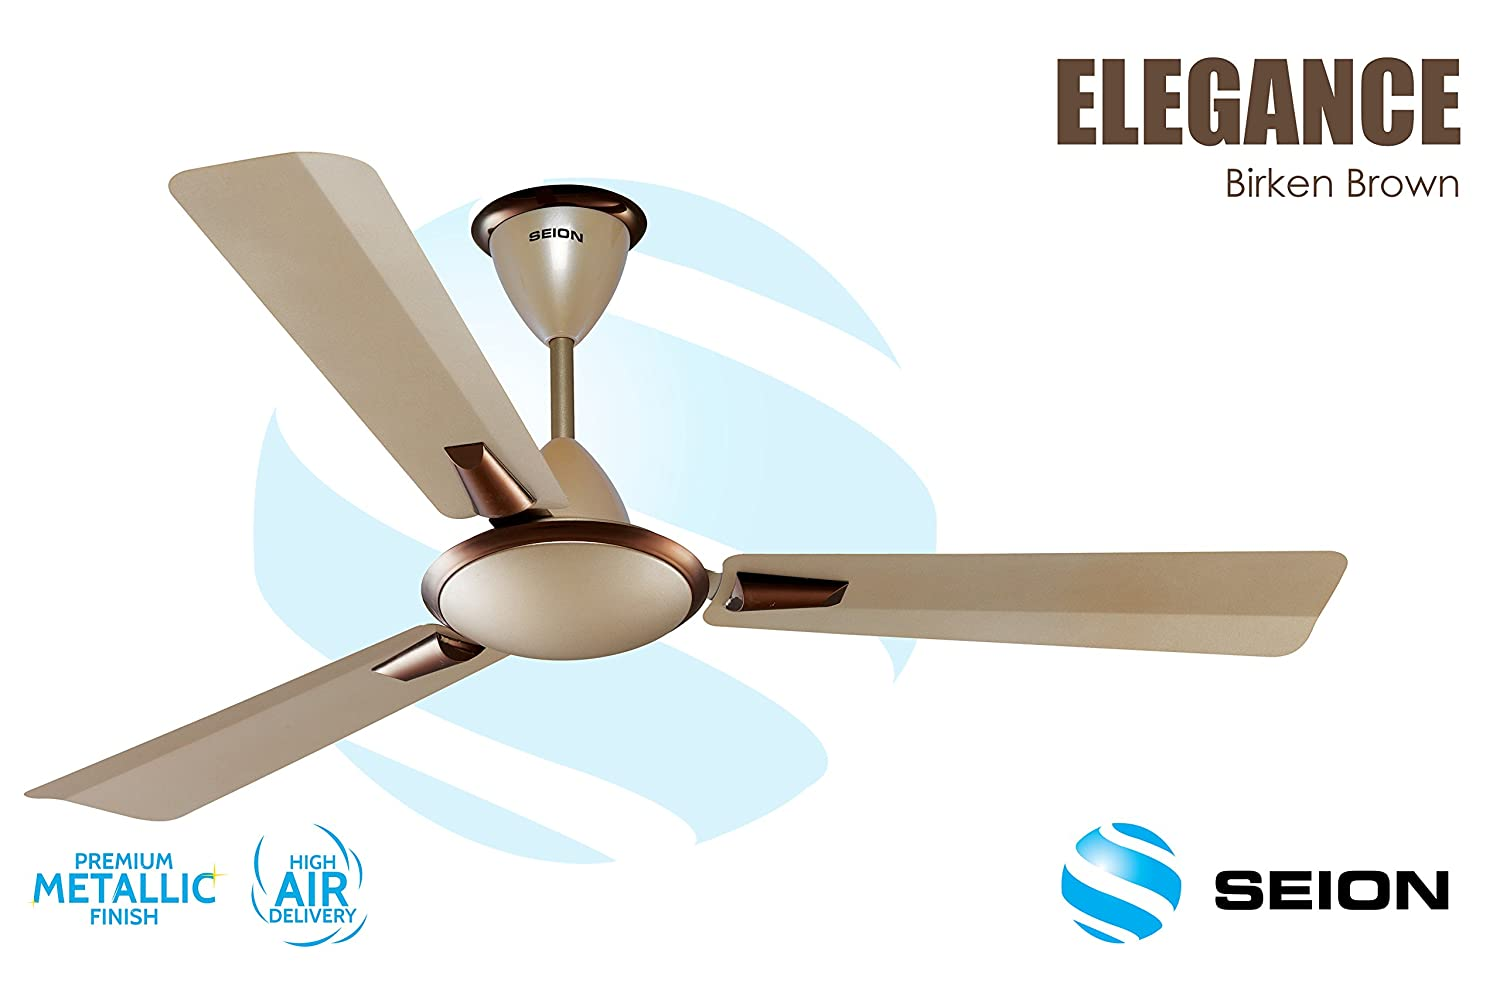 Seion Ceiling Fan Elegance Birken Brown 1200 Mm At Low S In India